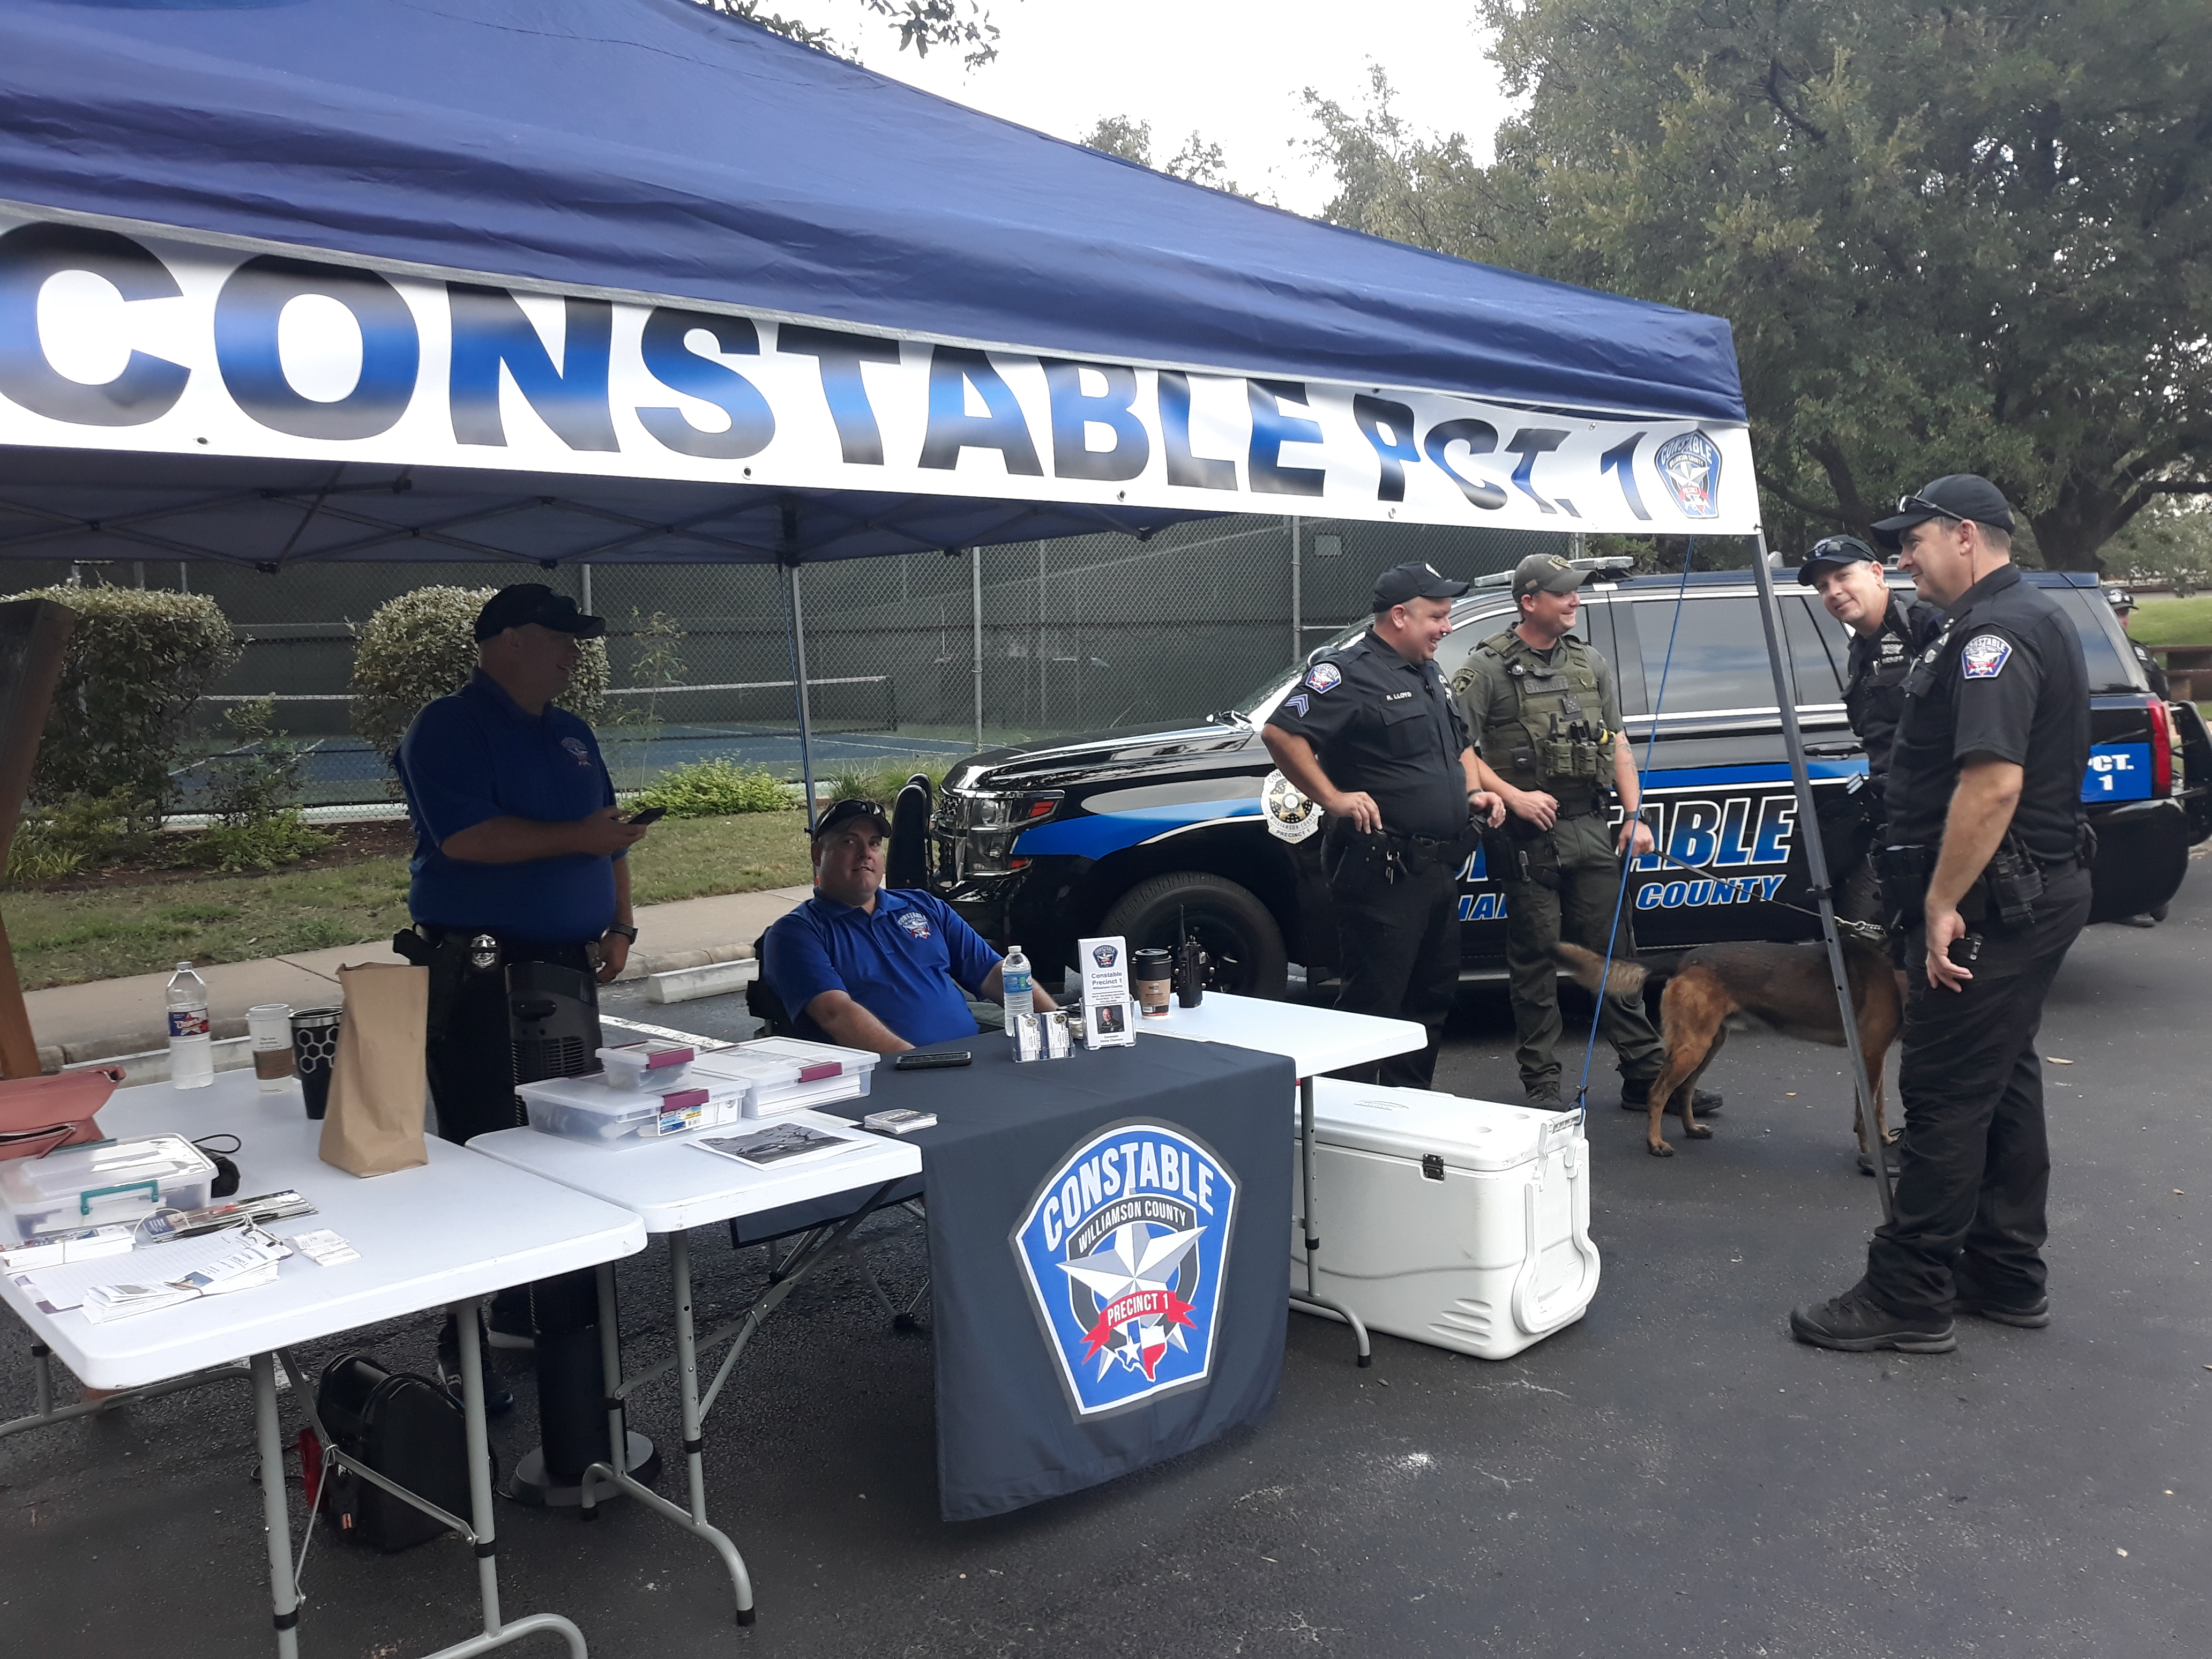 Precinct 1 Constable Vinnie Cherrone and his deputies shared their booth with Commissioner Cook.